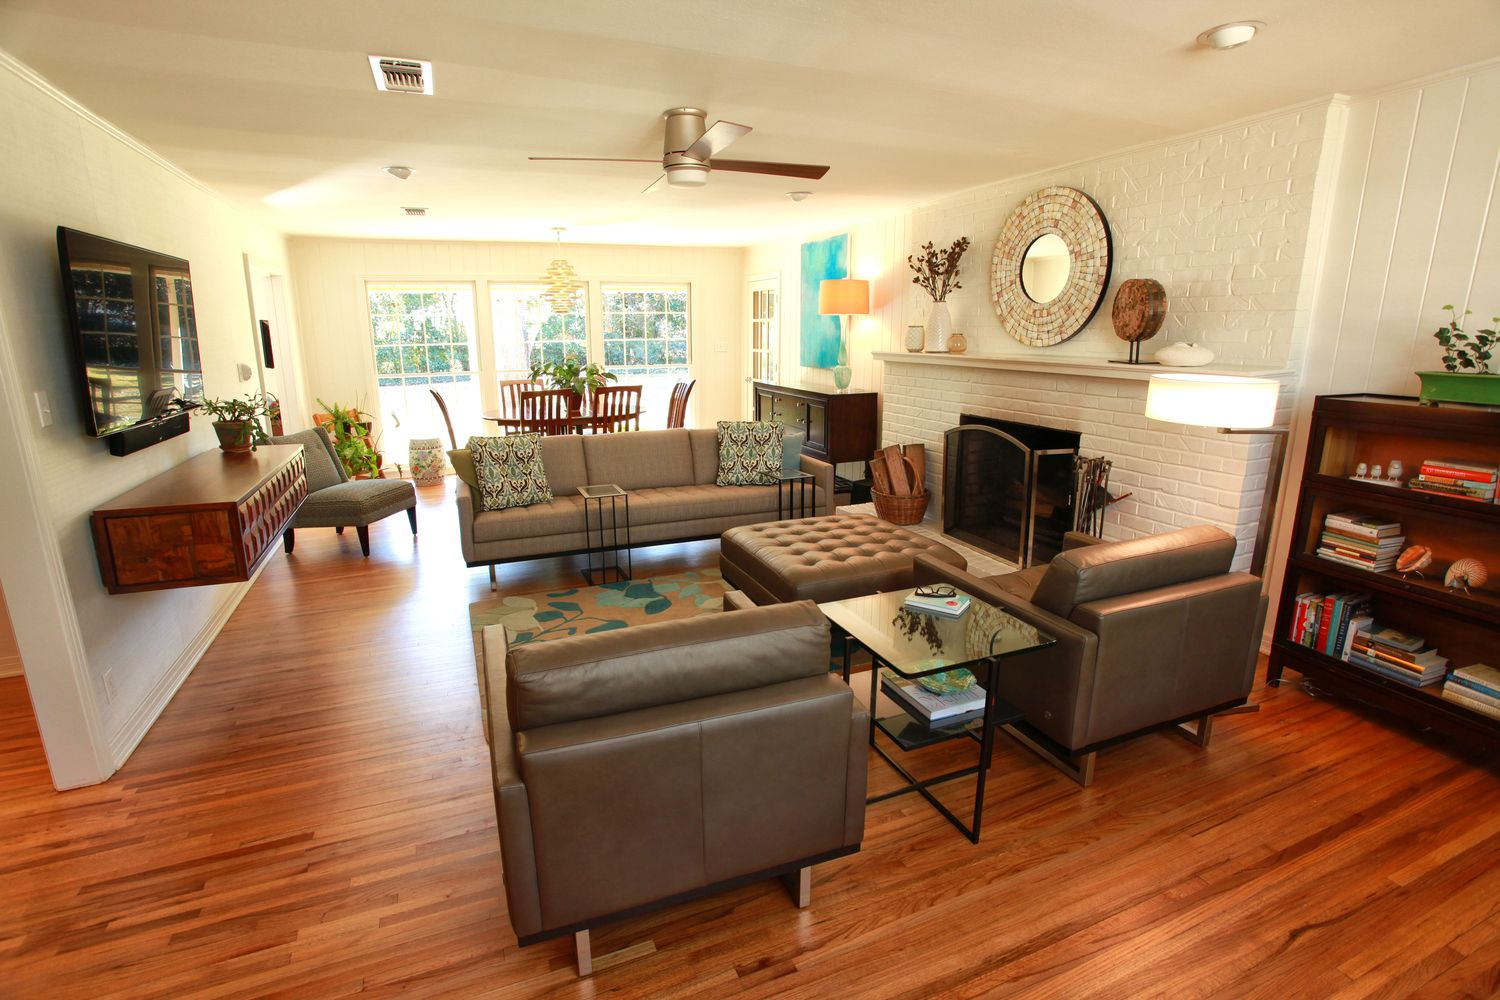 How To Arrange Furniture In A Narrow Living Room | Long ...